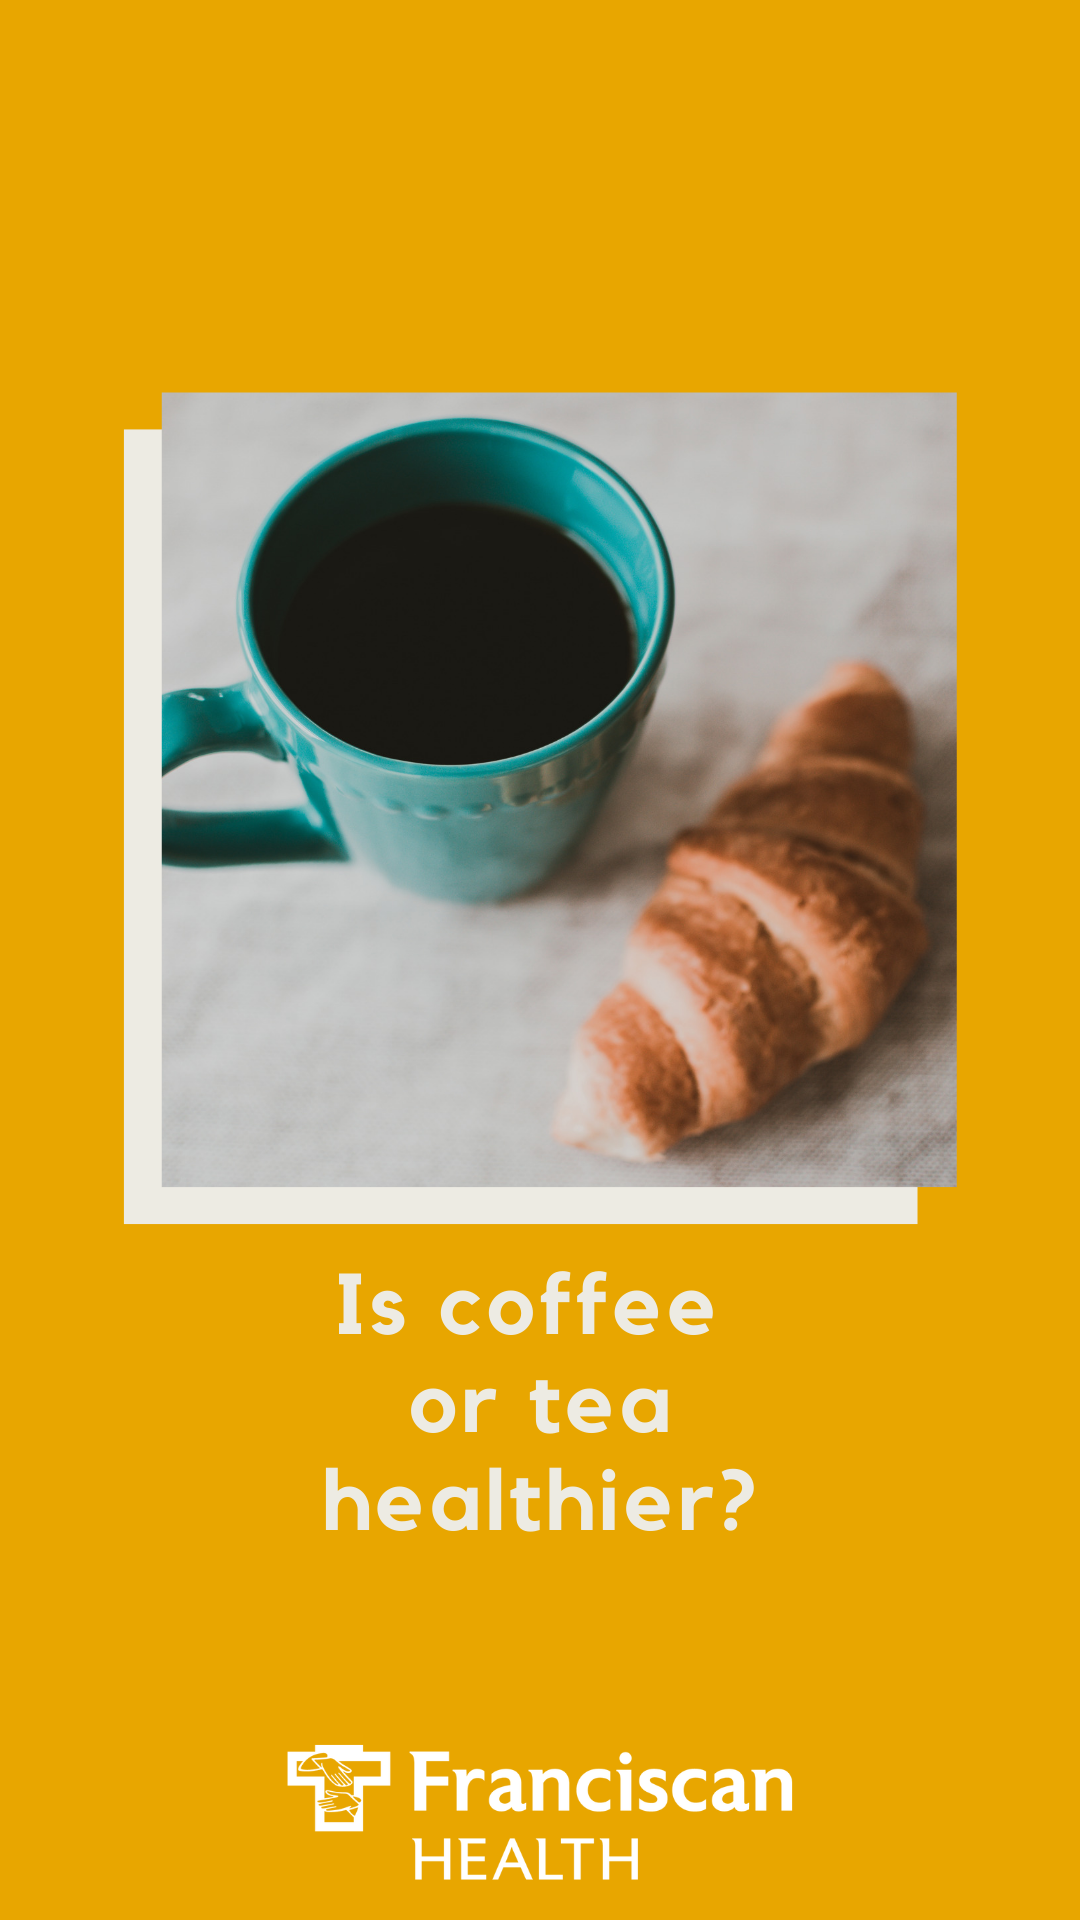 Coffee or tea which is healthier? If you're wondering